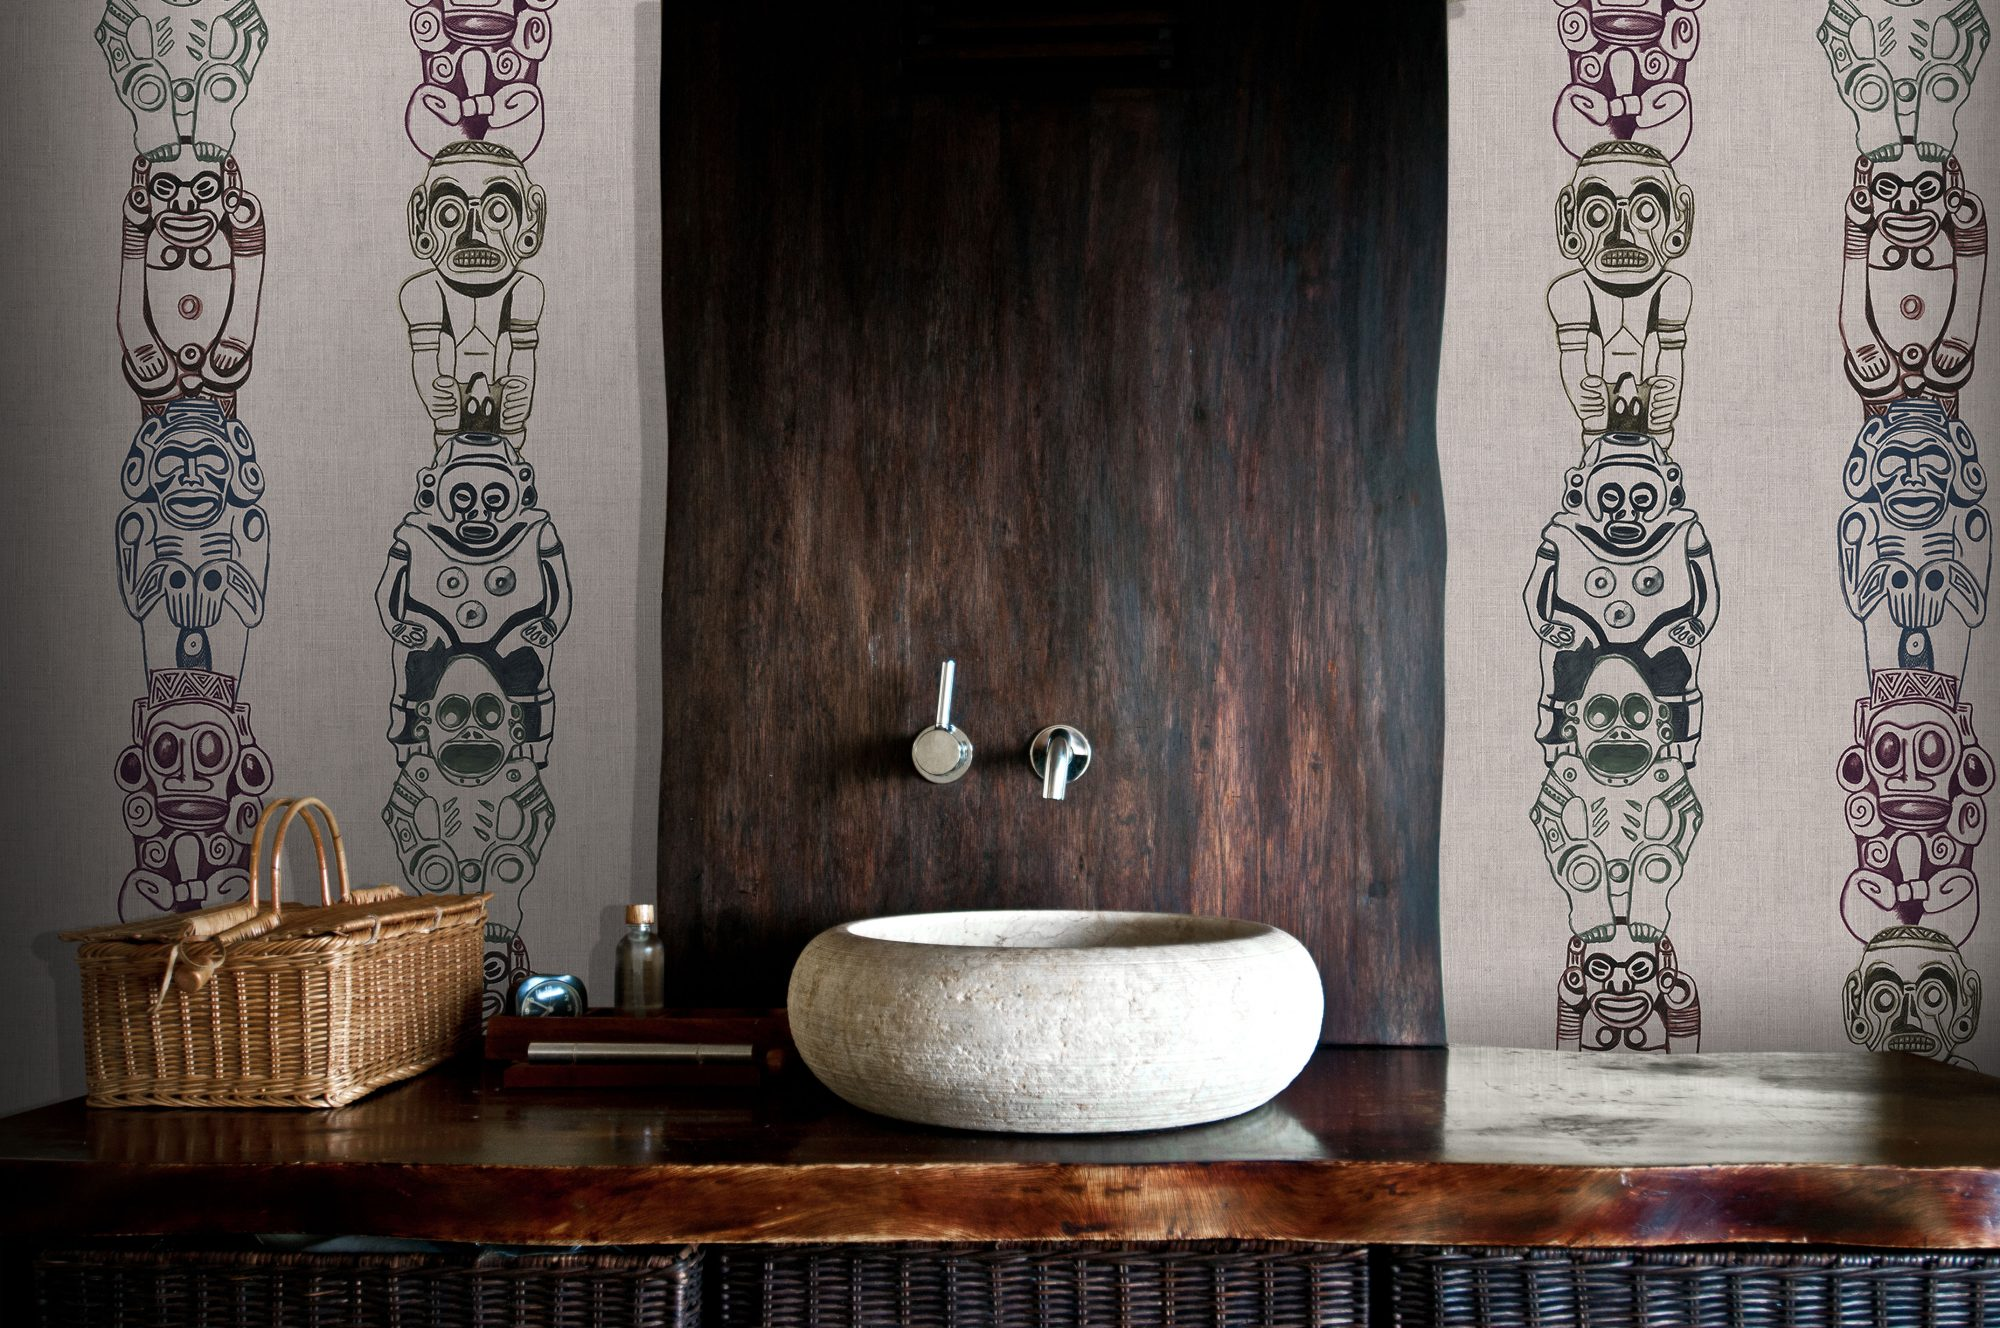 Stone Sink with Wallpaper on Wall Behind